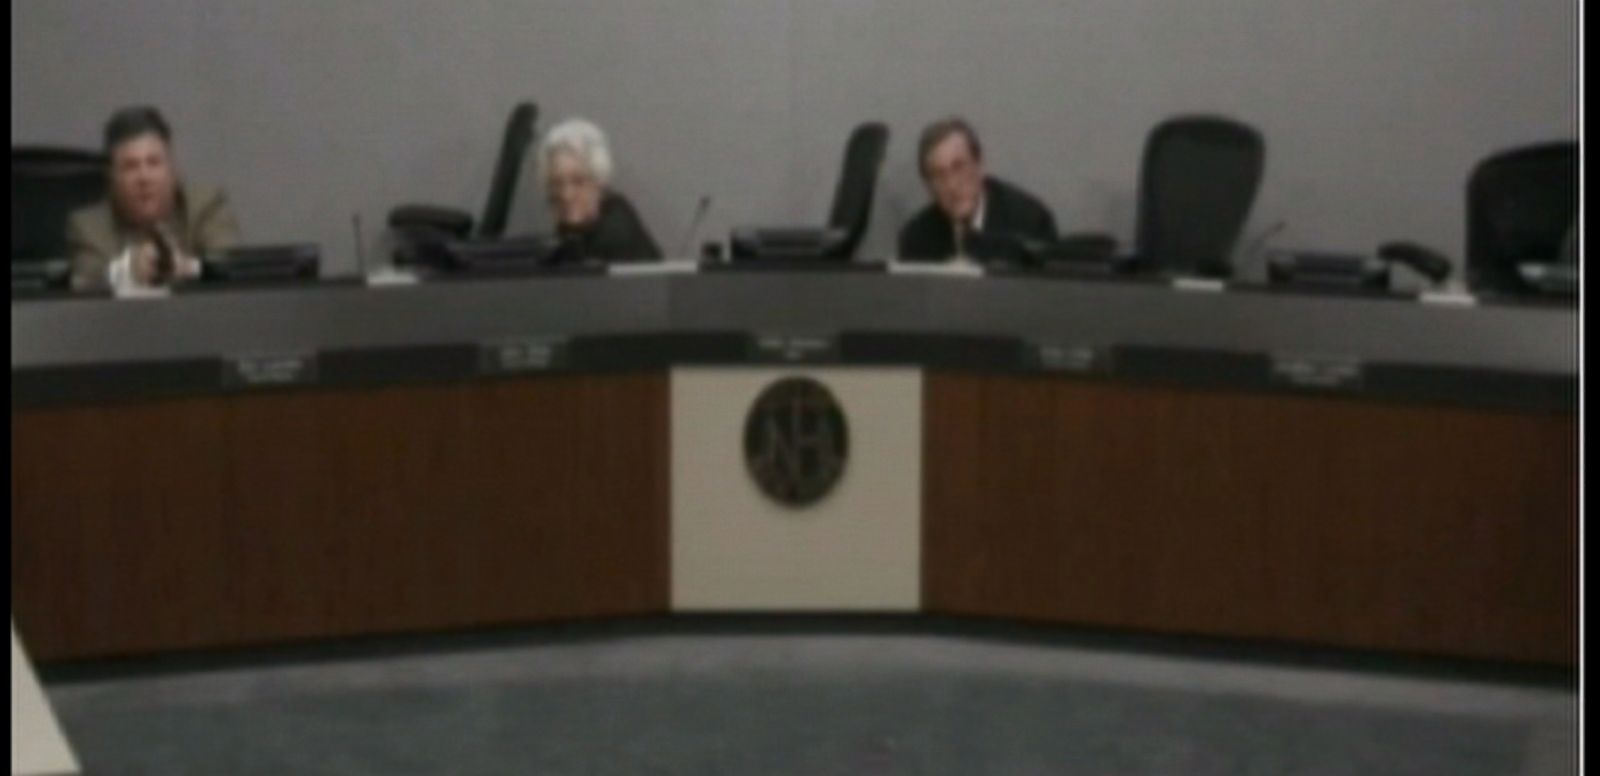 VIDEO: The council members ducked behind their desk following the shooting.